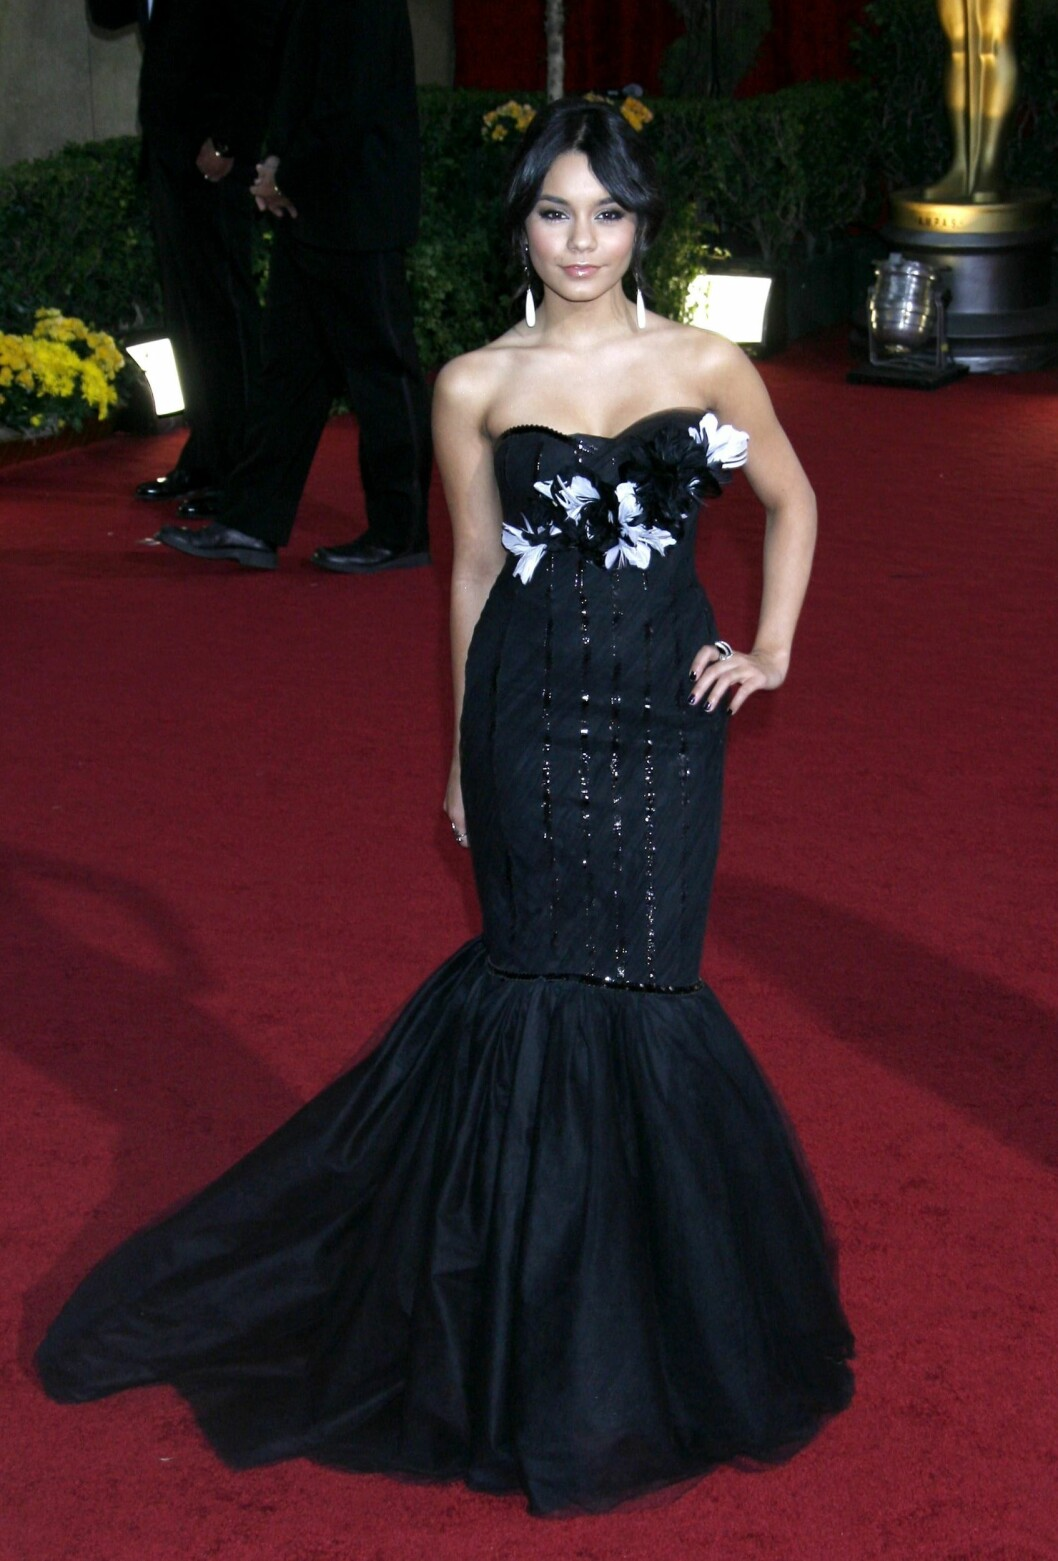 Vanessa Hudgens i en svart havfruekjole fra Marchesa. Foto: All Over Press